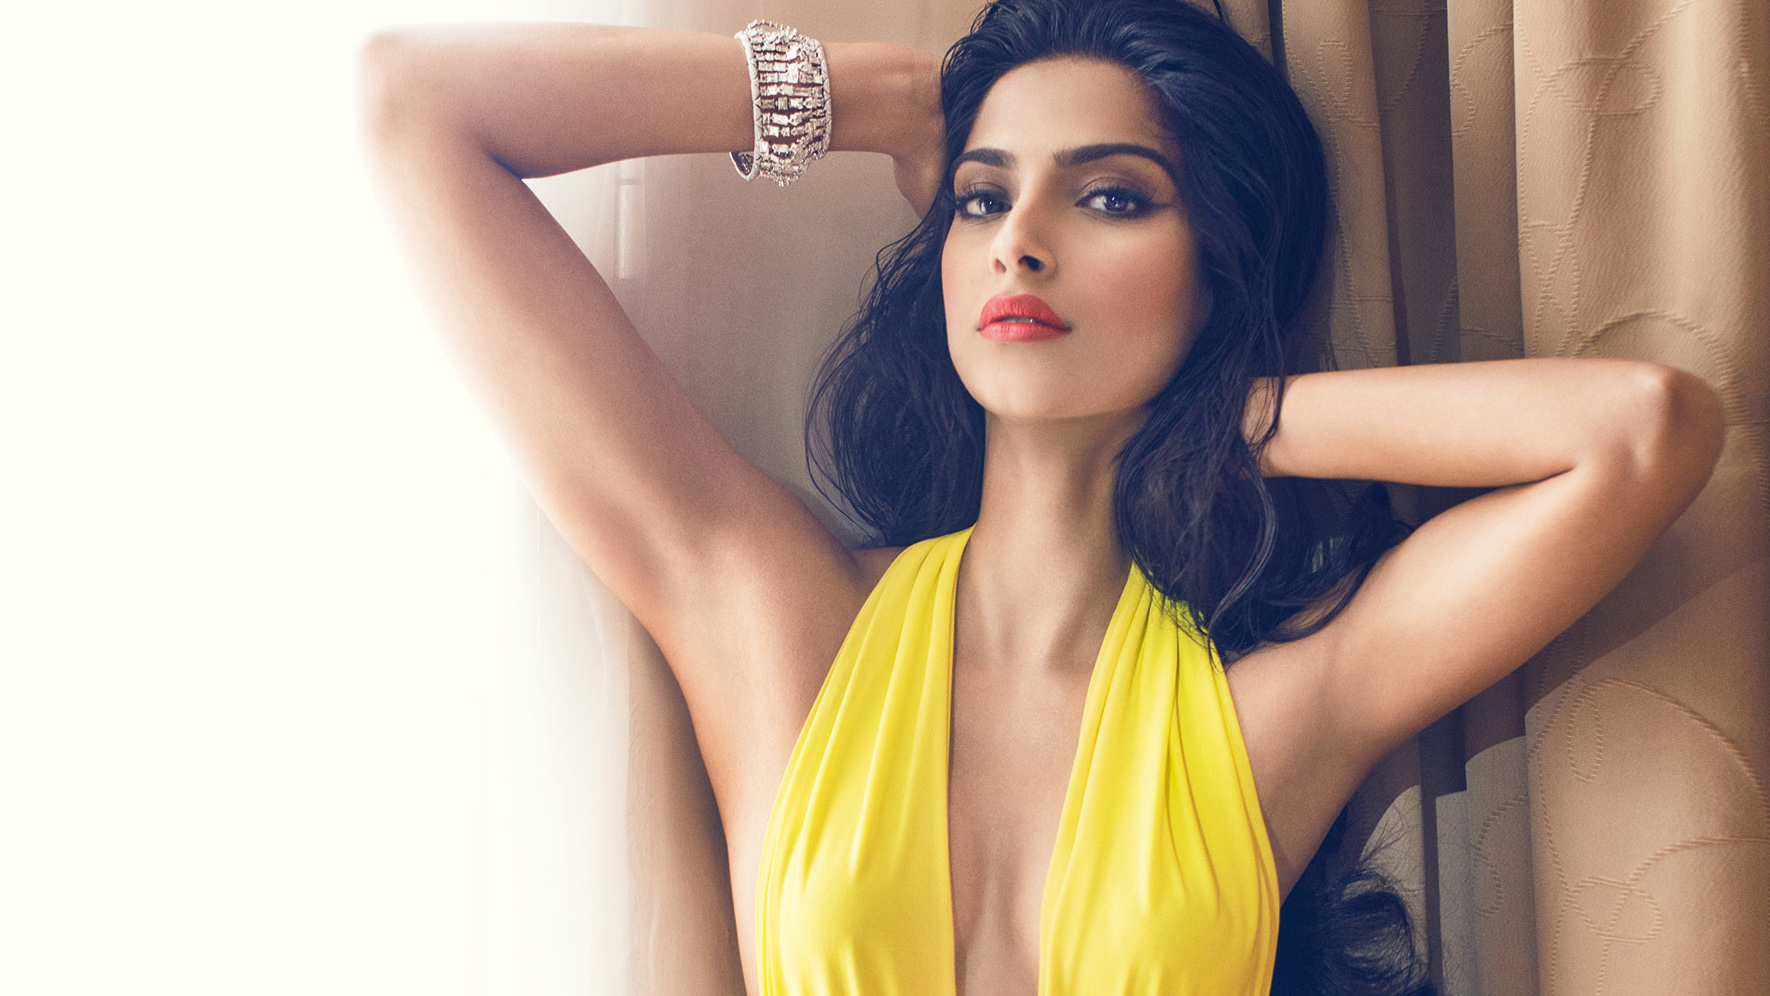 asin thottumkal hindi actress hd wallpapers hd wallpapers 1770x996